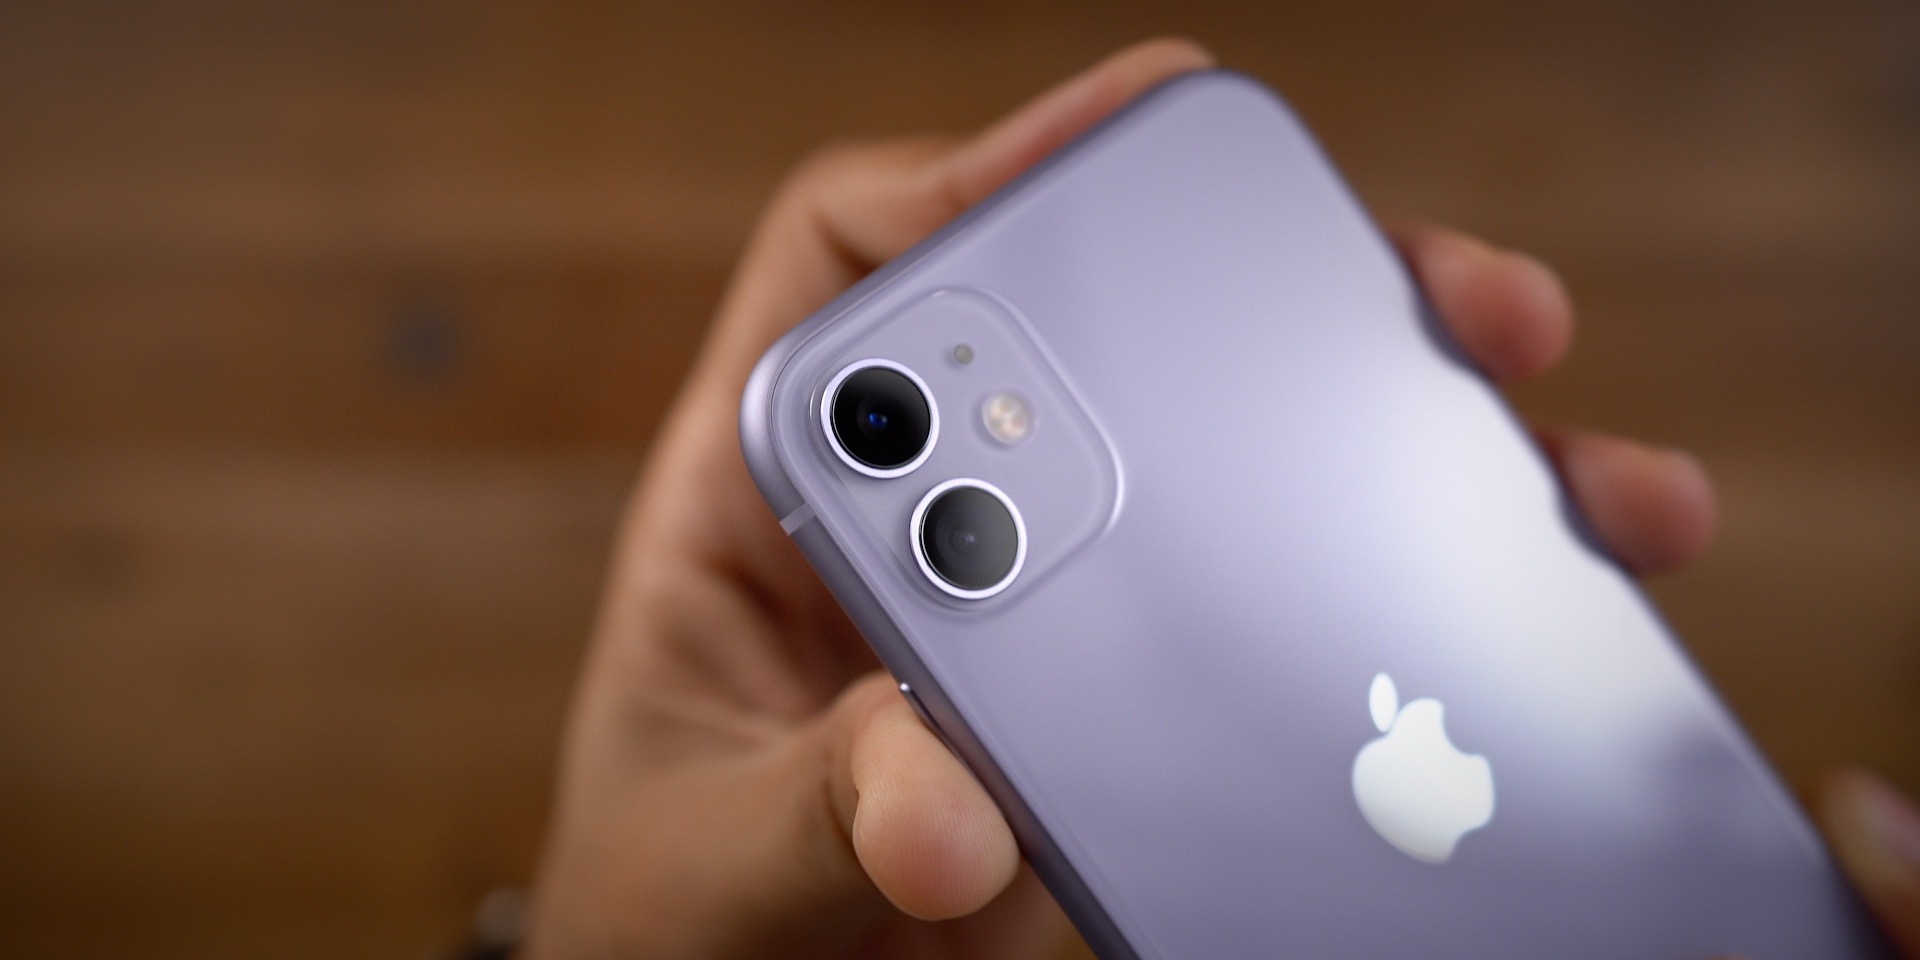 iPhone 11 and iPhone 11 Pro adding Deep Fusion camera